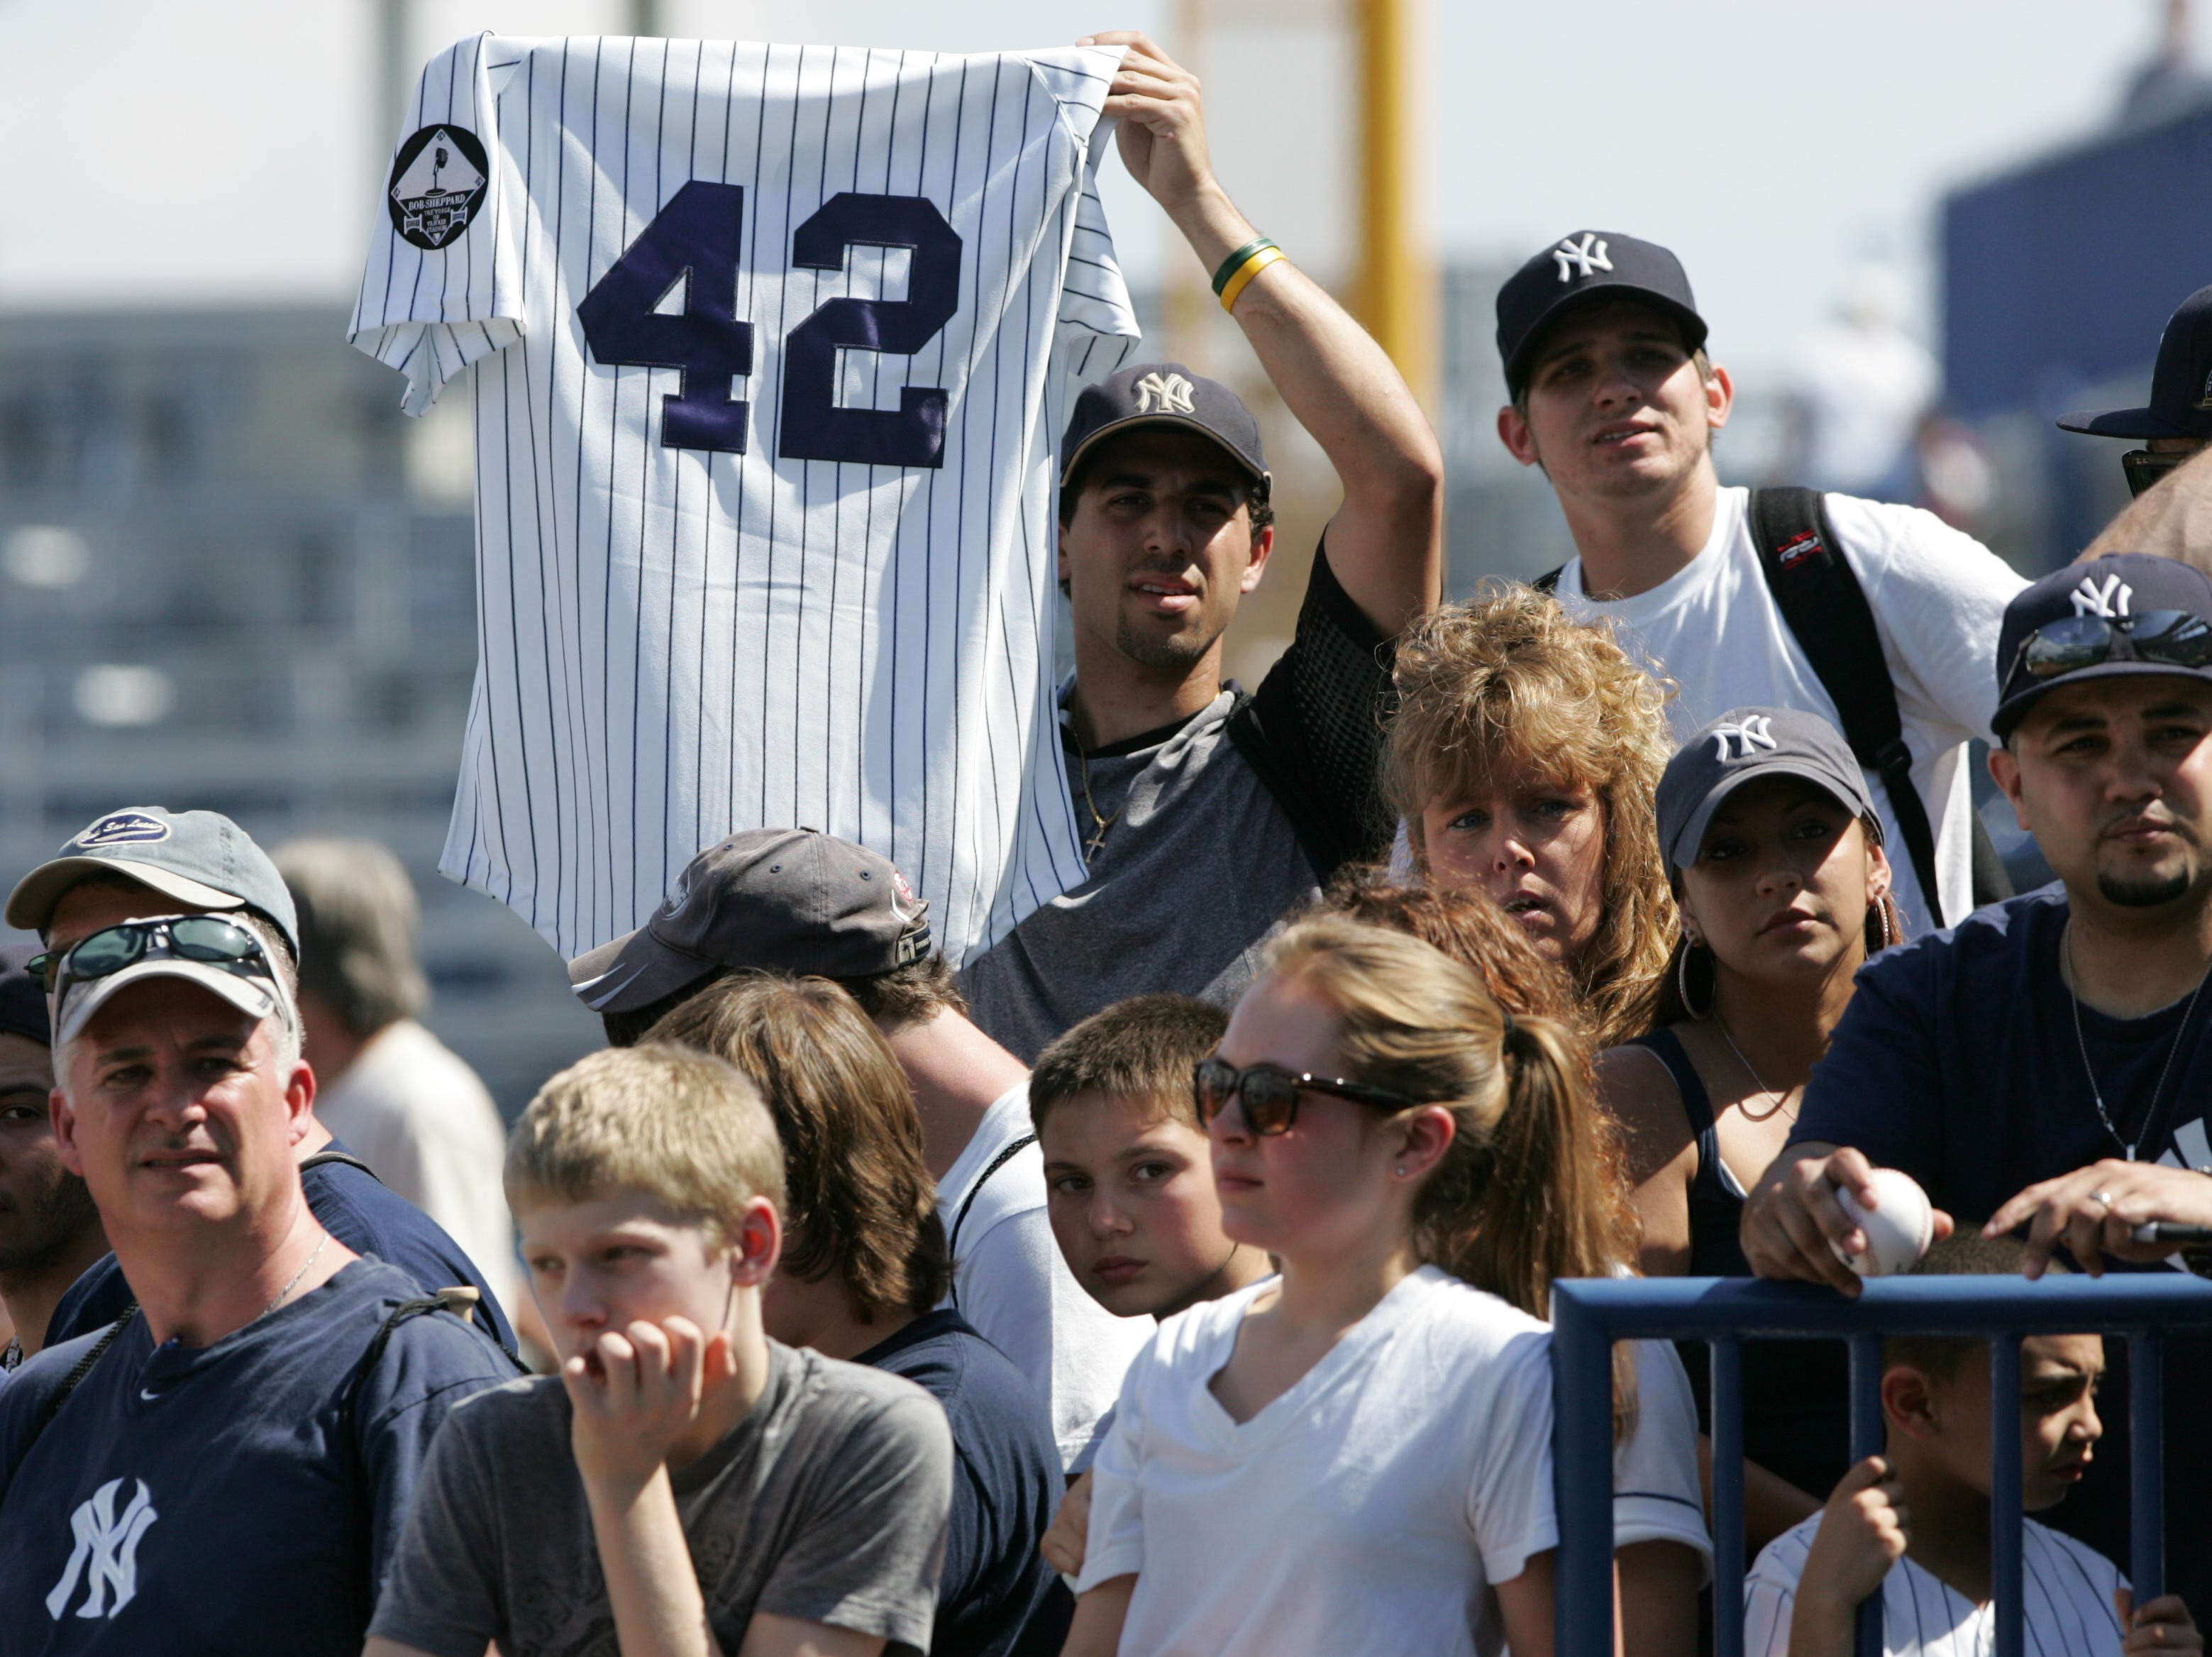 Yankees fans show their love for Mariano Rivera at spring training in 2011.